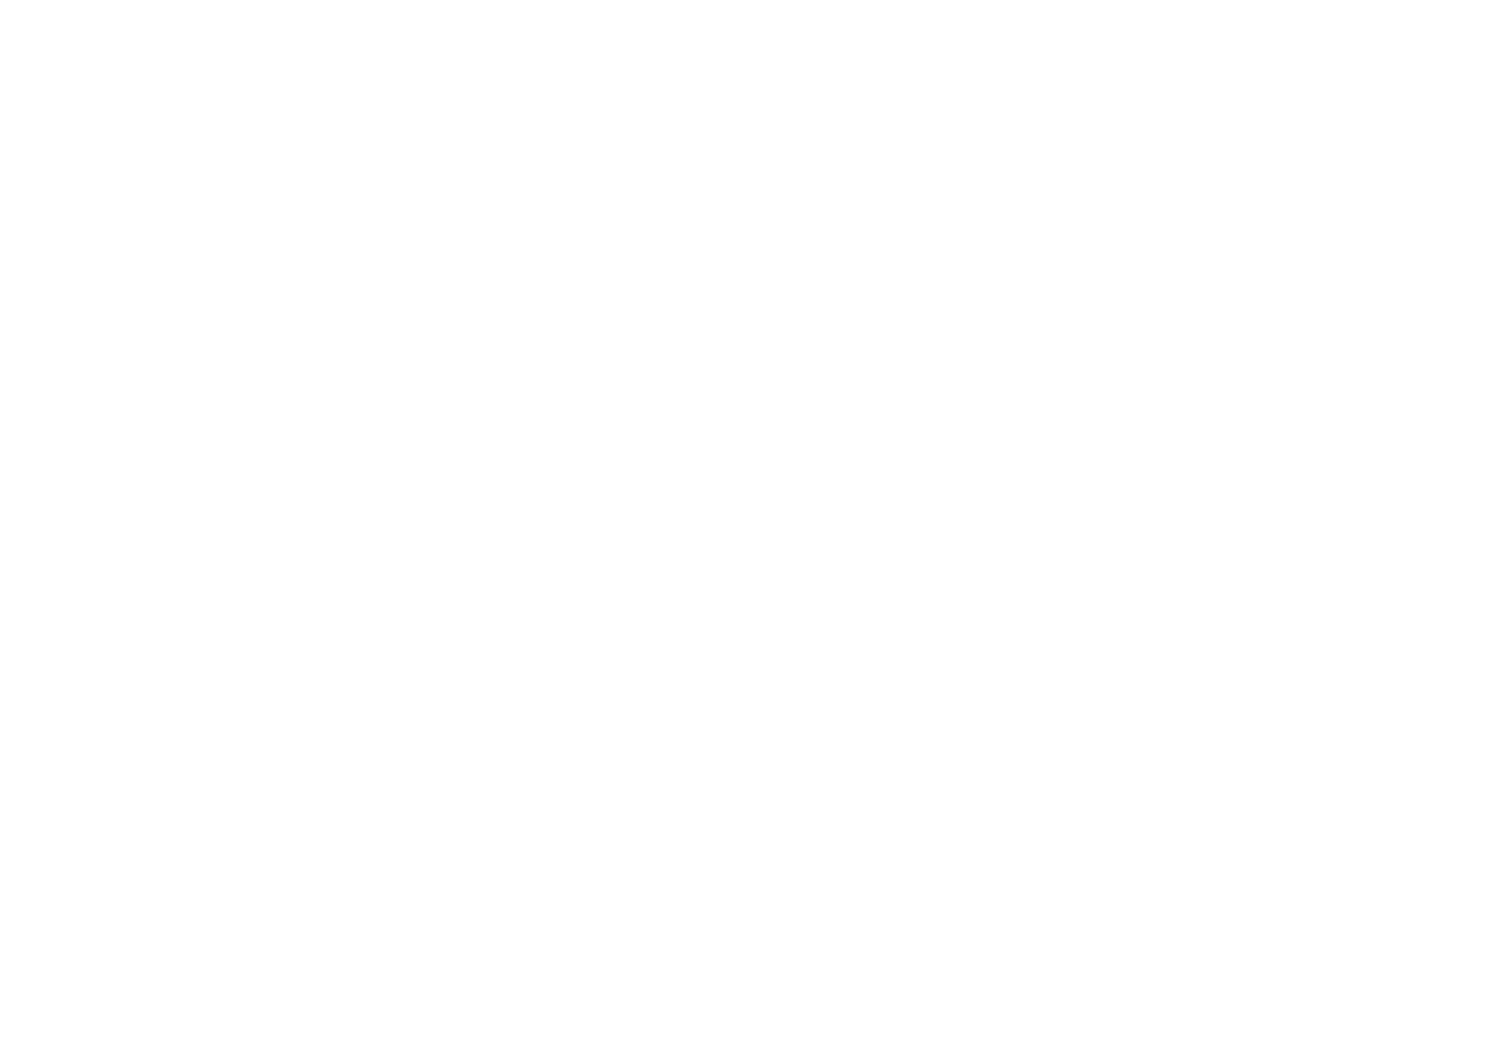 Cupcakes by Patrick